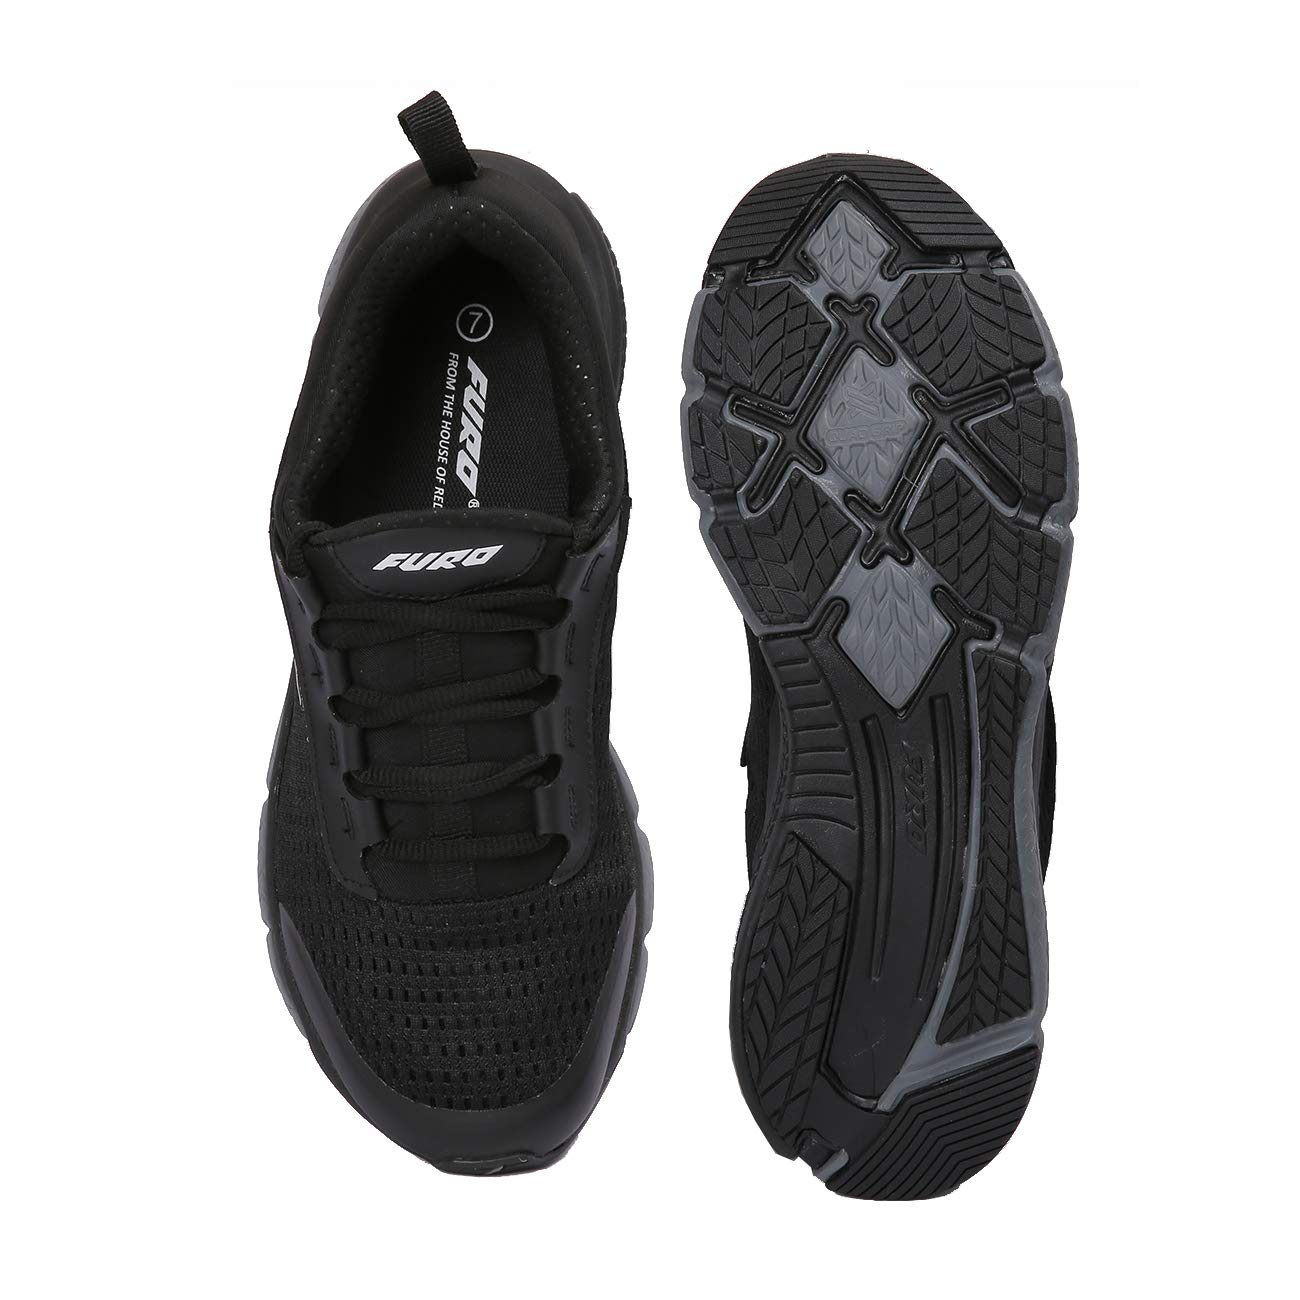 122d115b5a2 Furo (By Red Chief) Black Men s Running Shoe (R1018 825)  Buy Online at Low  Prices in India - Amazon.in